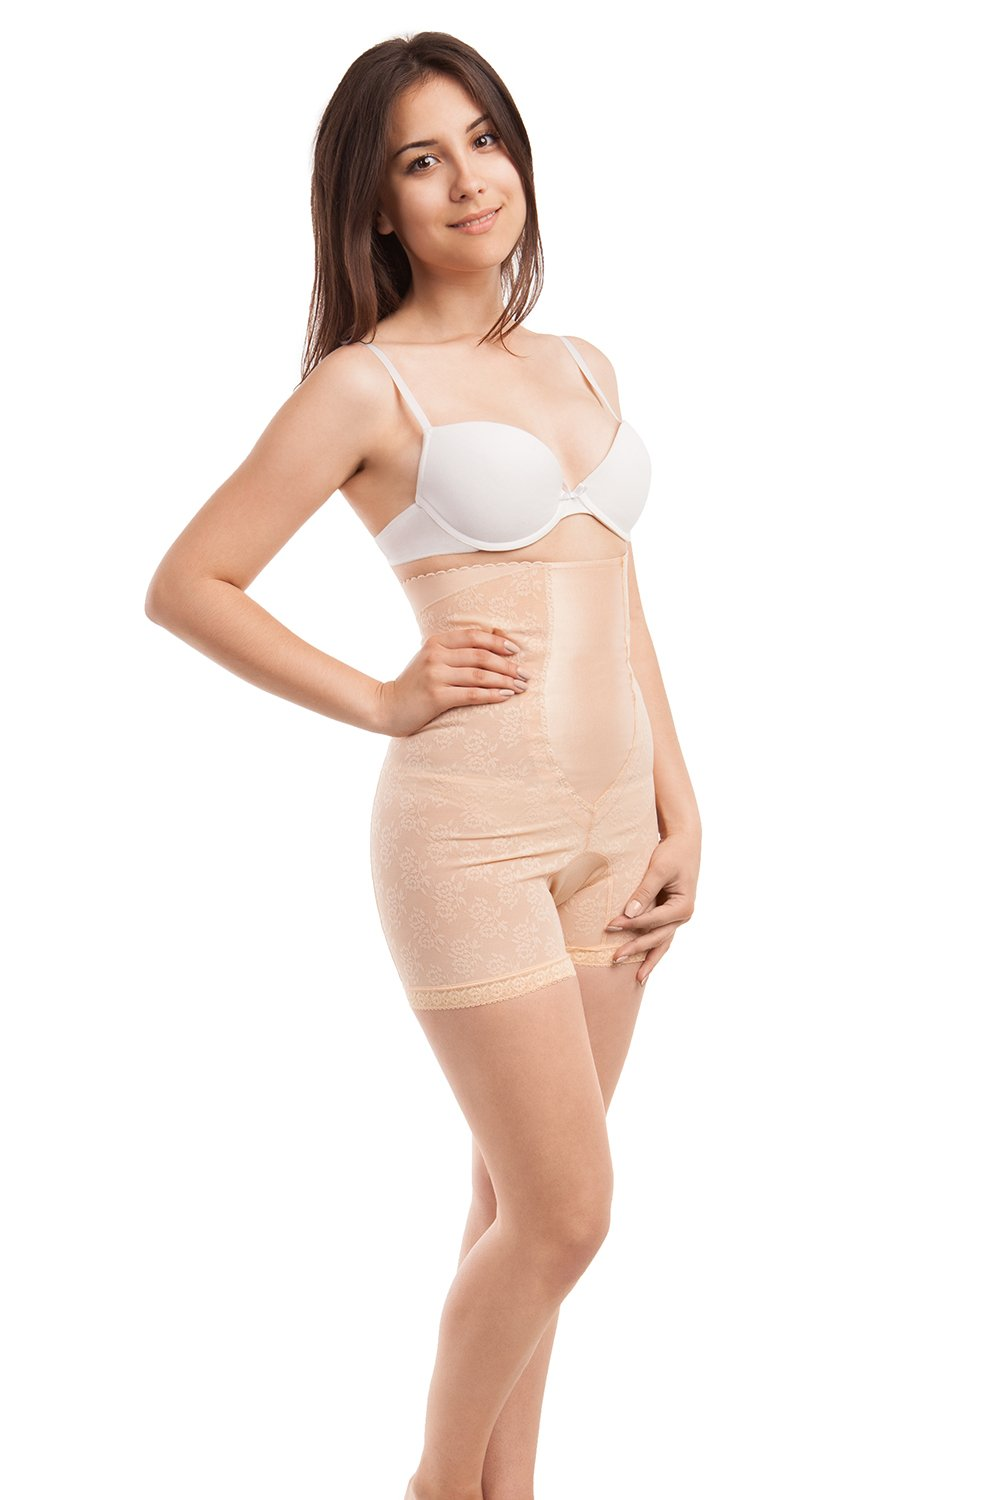 Abdominal and Back Support Body Shaping Girdle